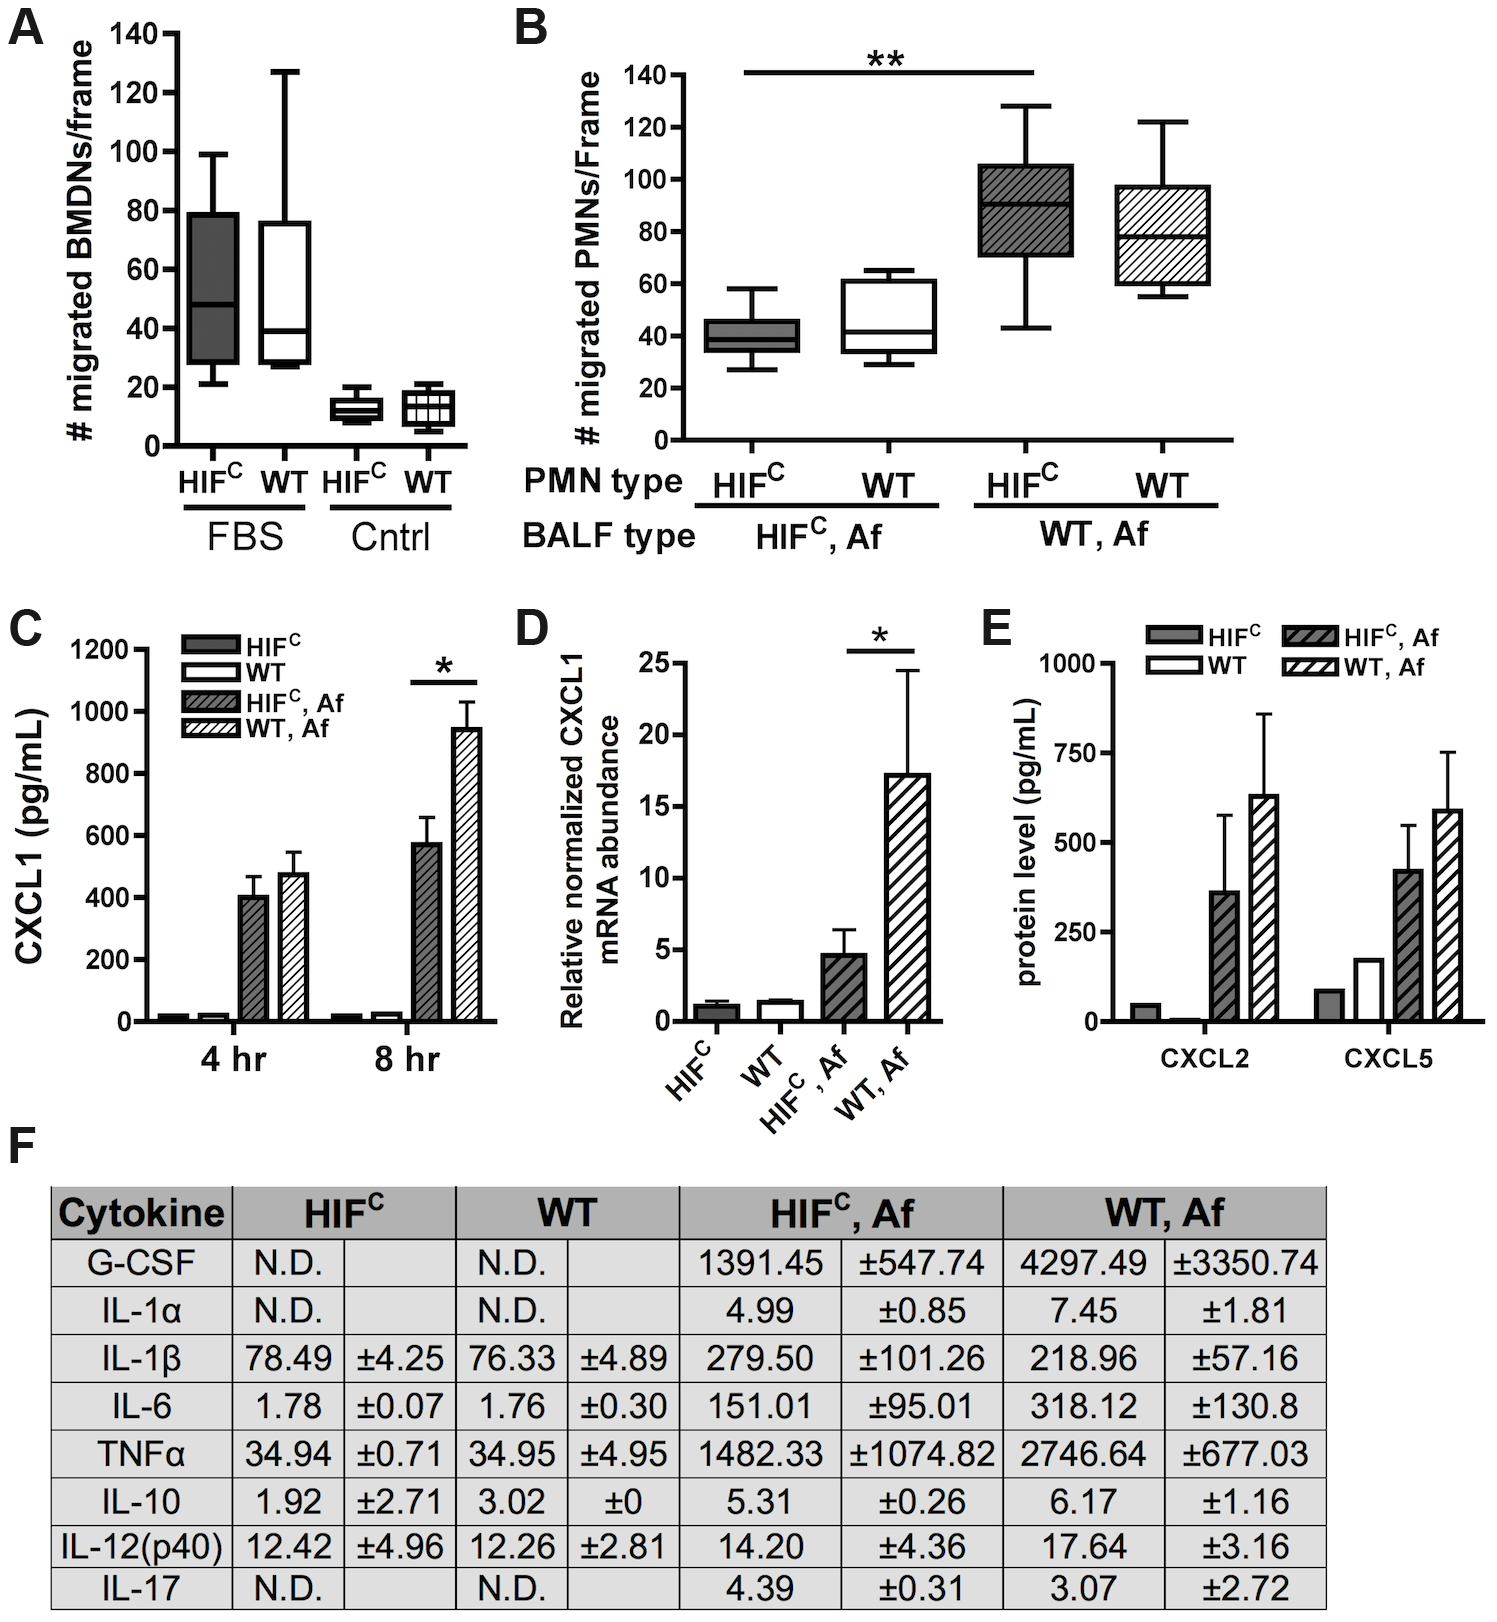 Decreased neutrophil levels in HIF<sup>C</sup> mice correlates to decreased production of CXCL1 and not migration defects.